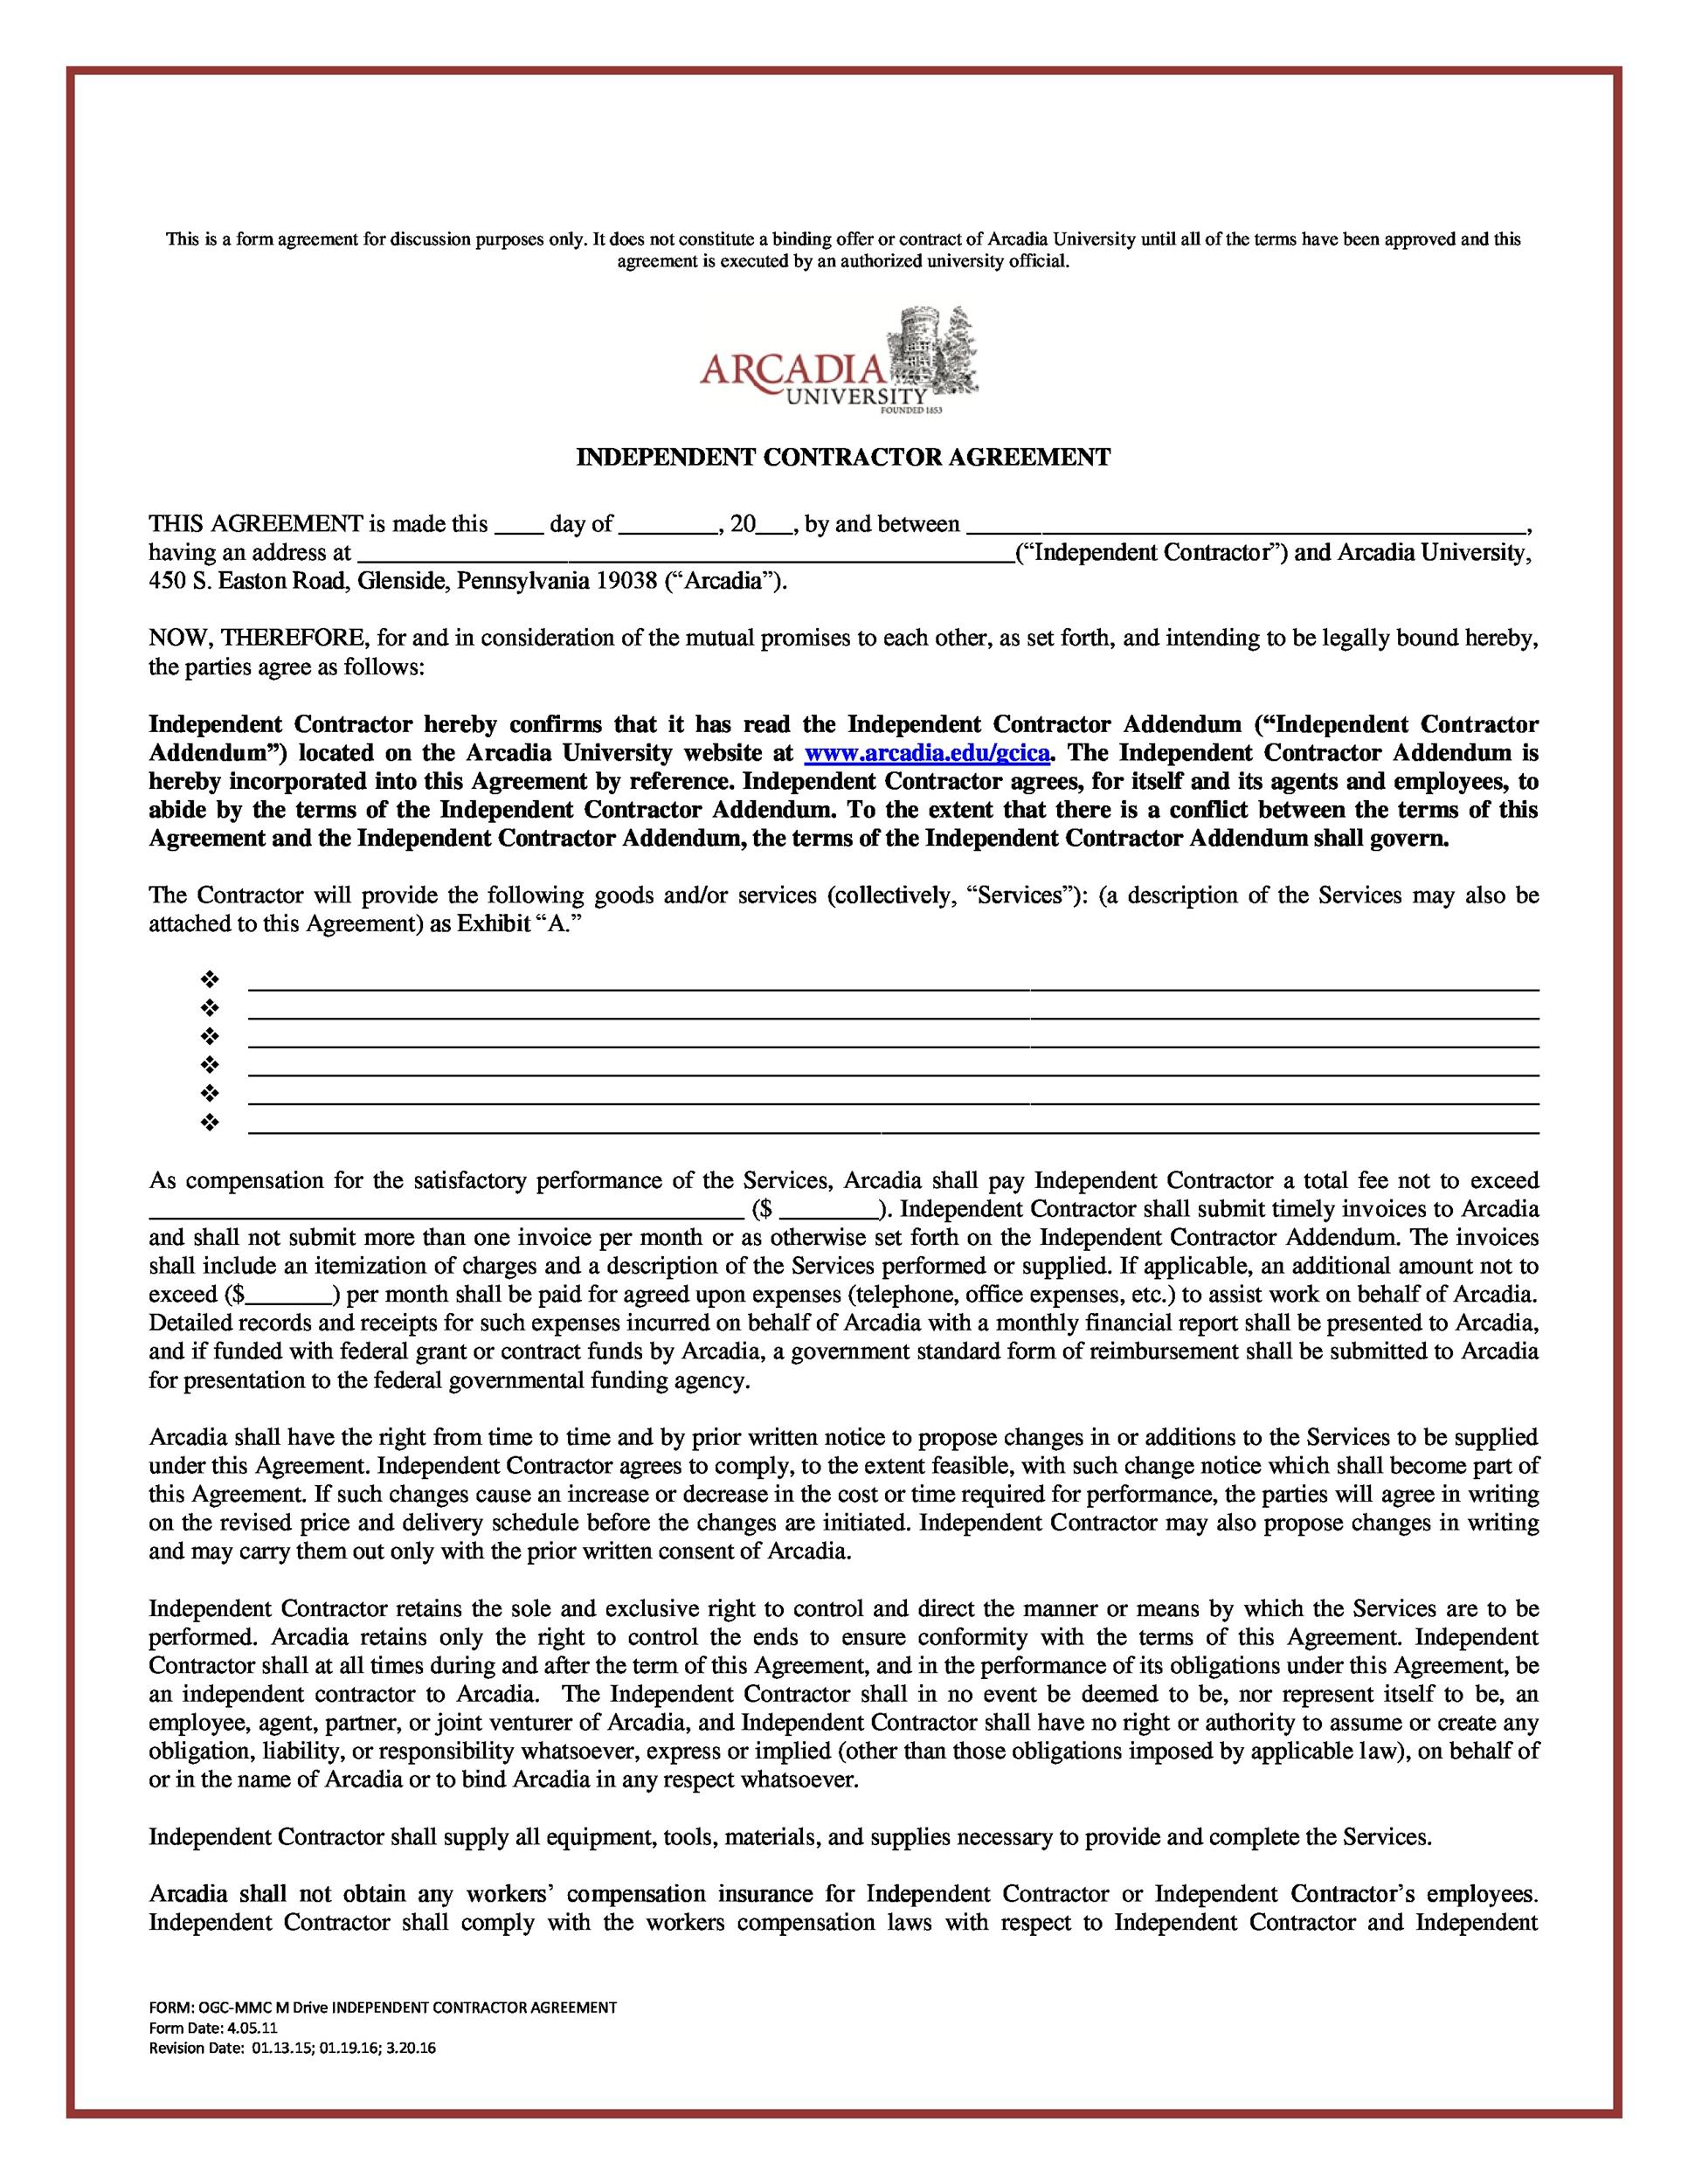 50 FREE Independent Contractor Agreement Forms Templates – Independent Agreement Contract